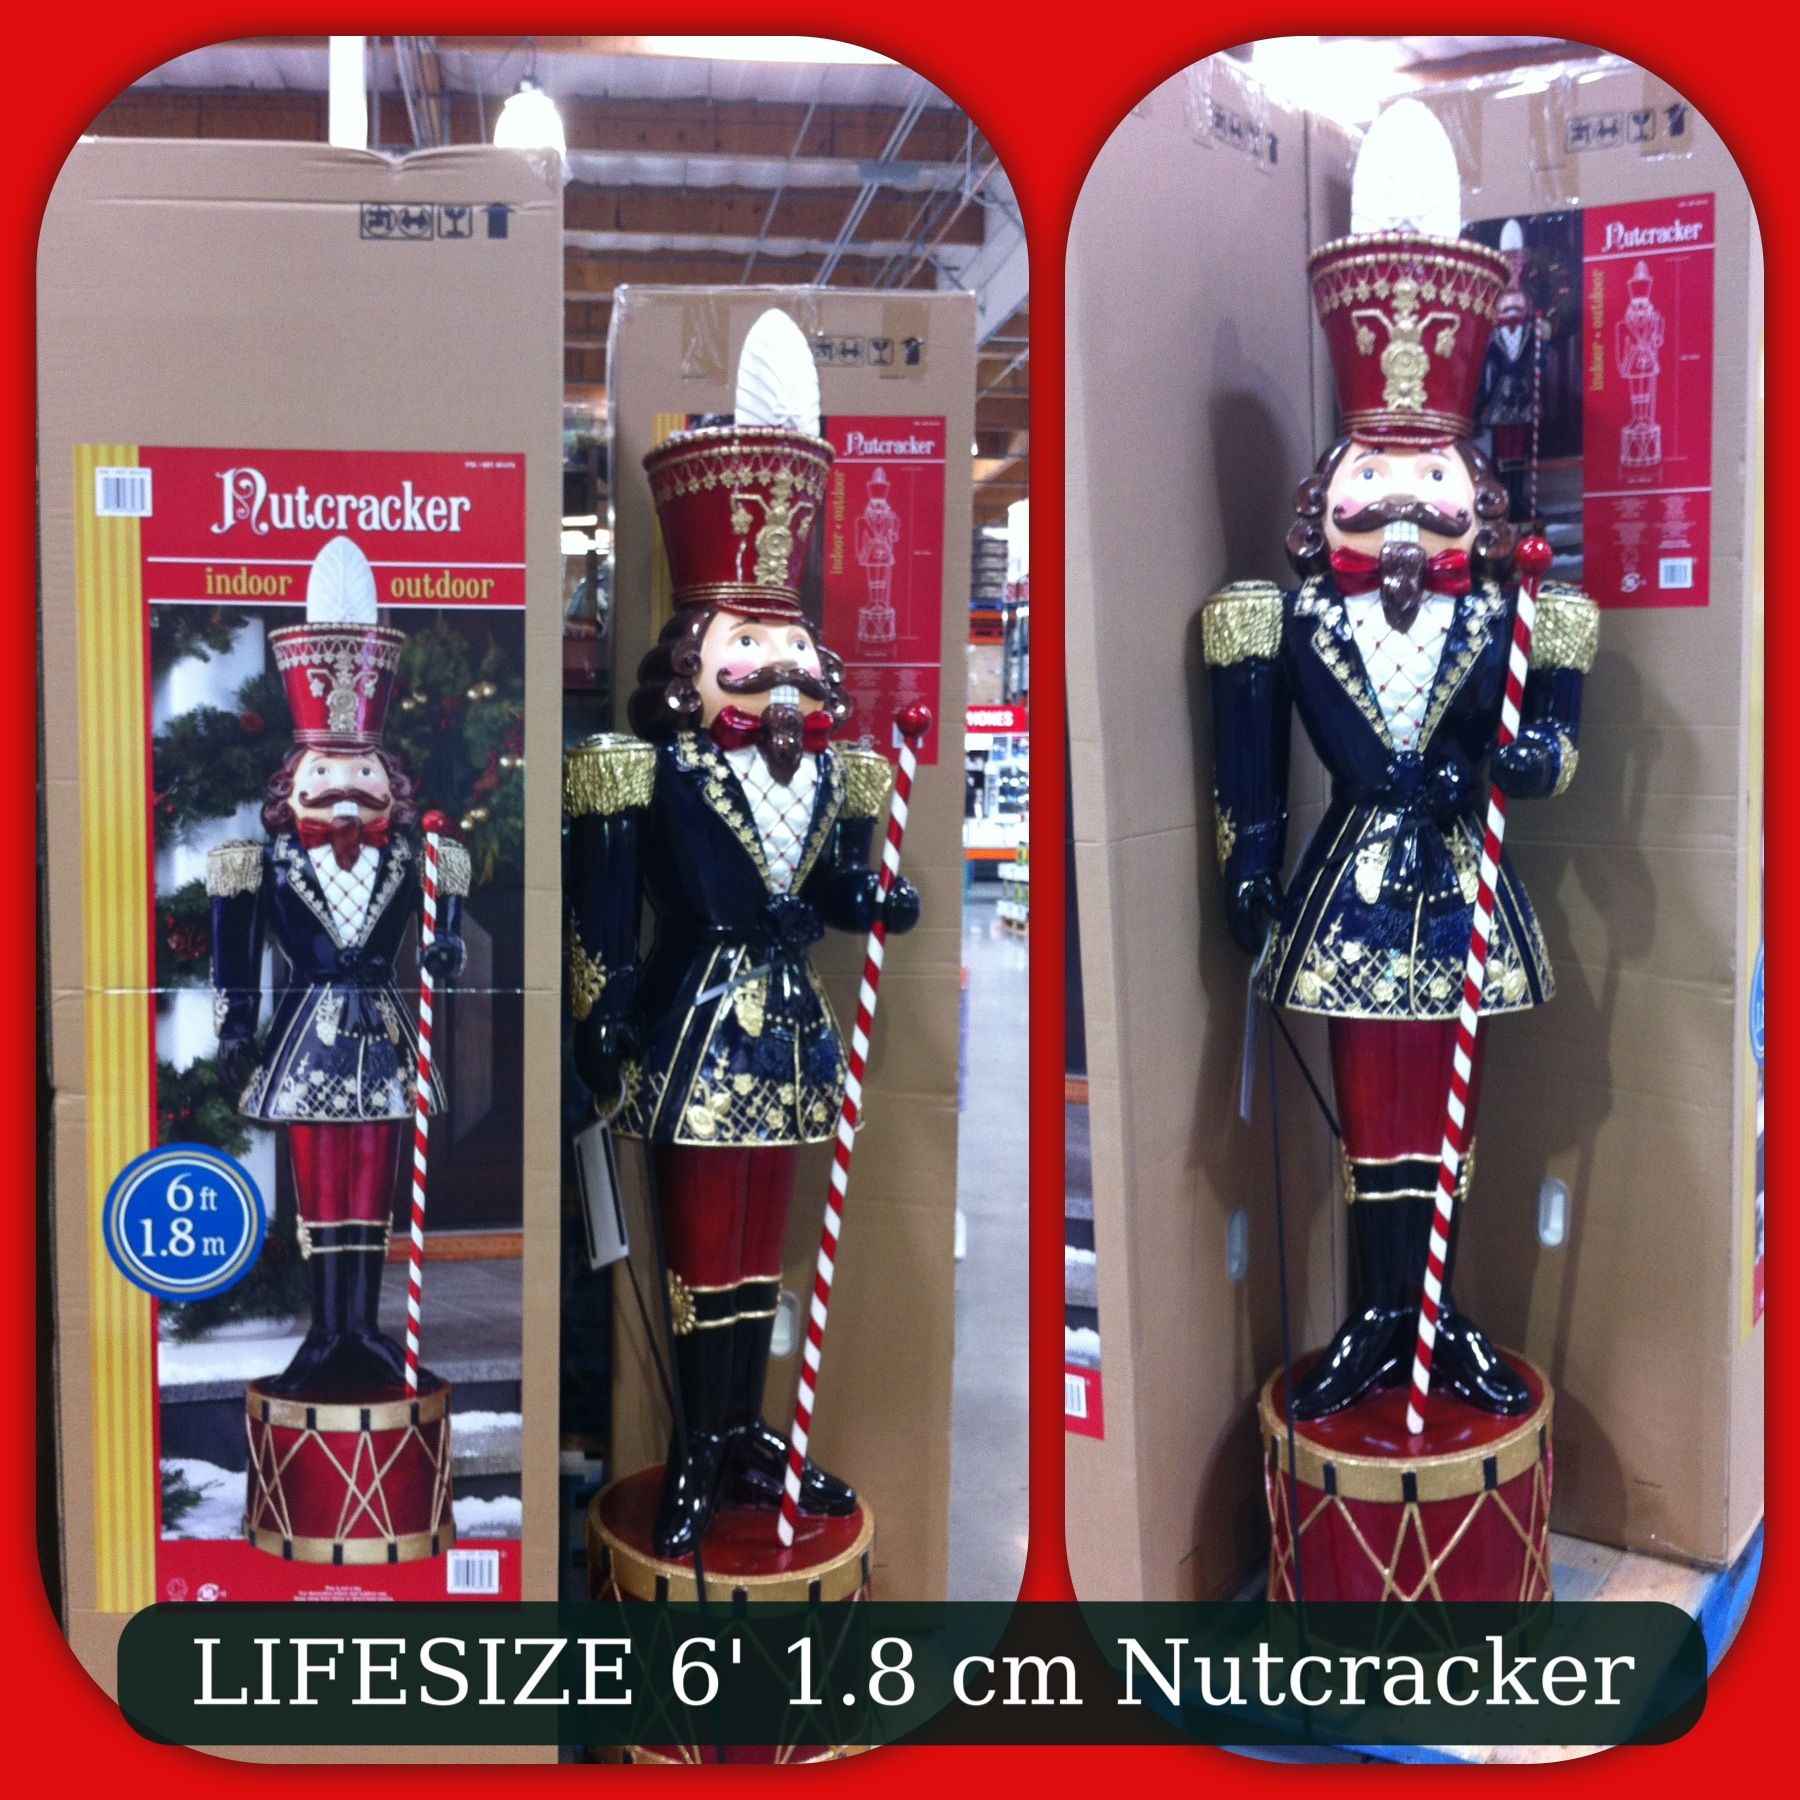 12 Ft Christmas Tree Costco: LIFESIZE Nutcrackers Just In Time For Christmas!!!! Costco